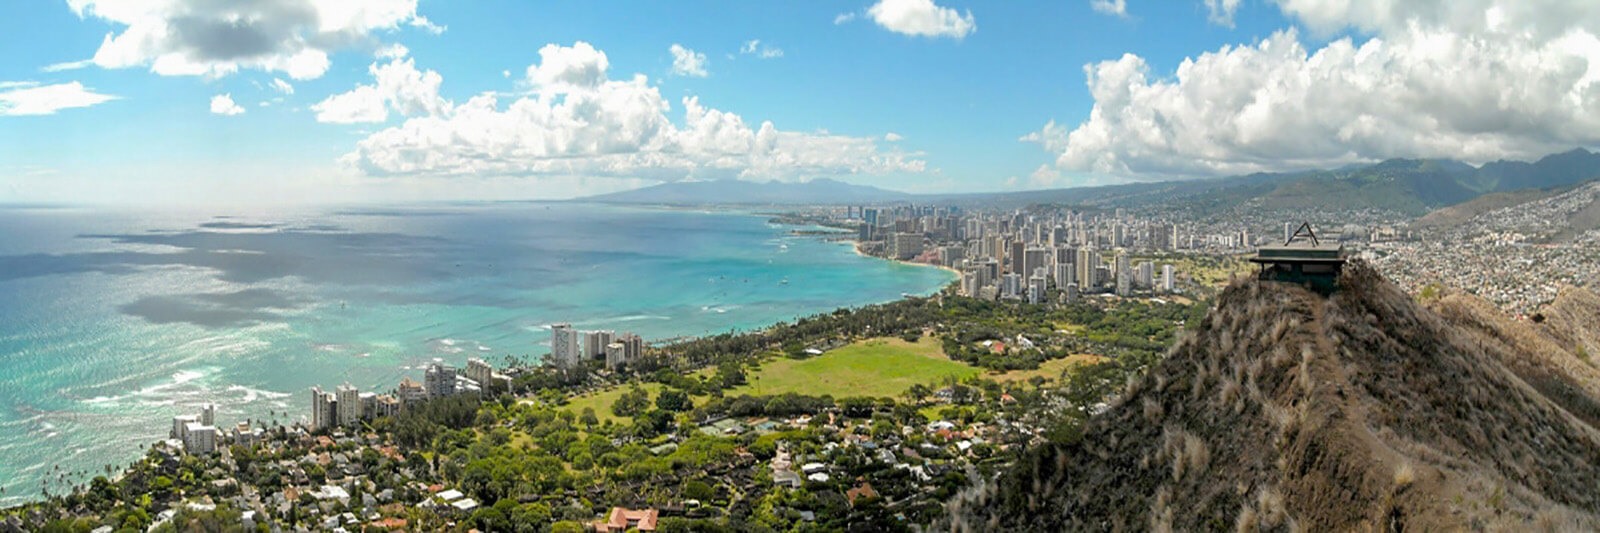 View from the top Diamond Head volcano crater overlooking Waikiki Beach and Honolulu, Hawaii